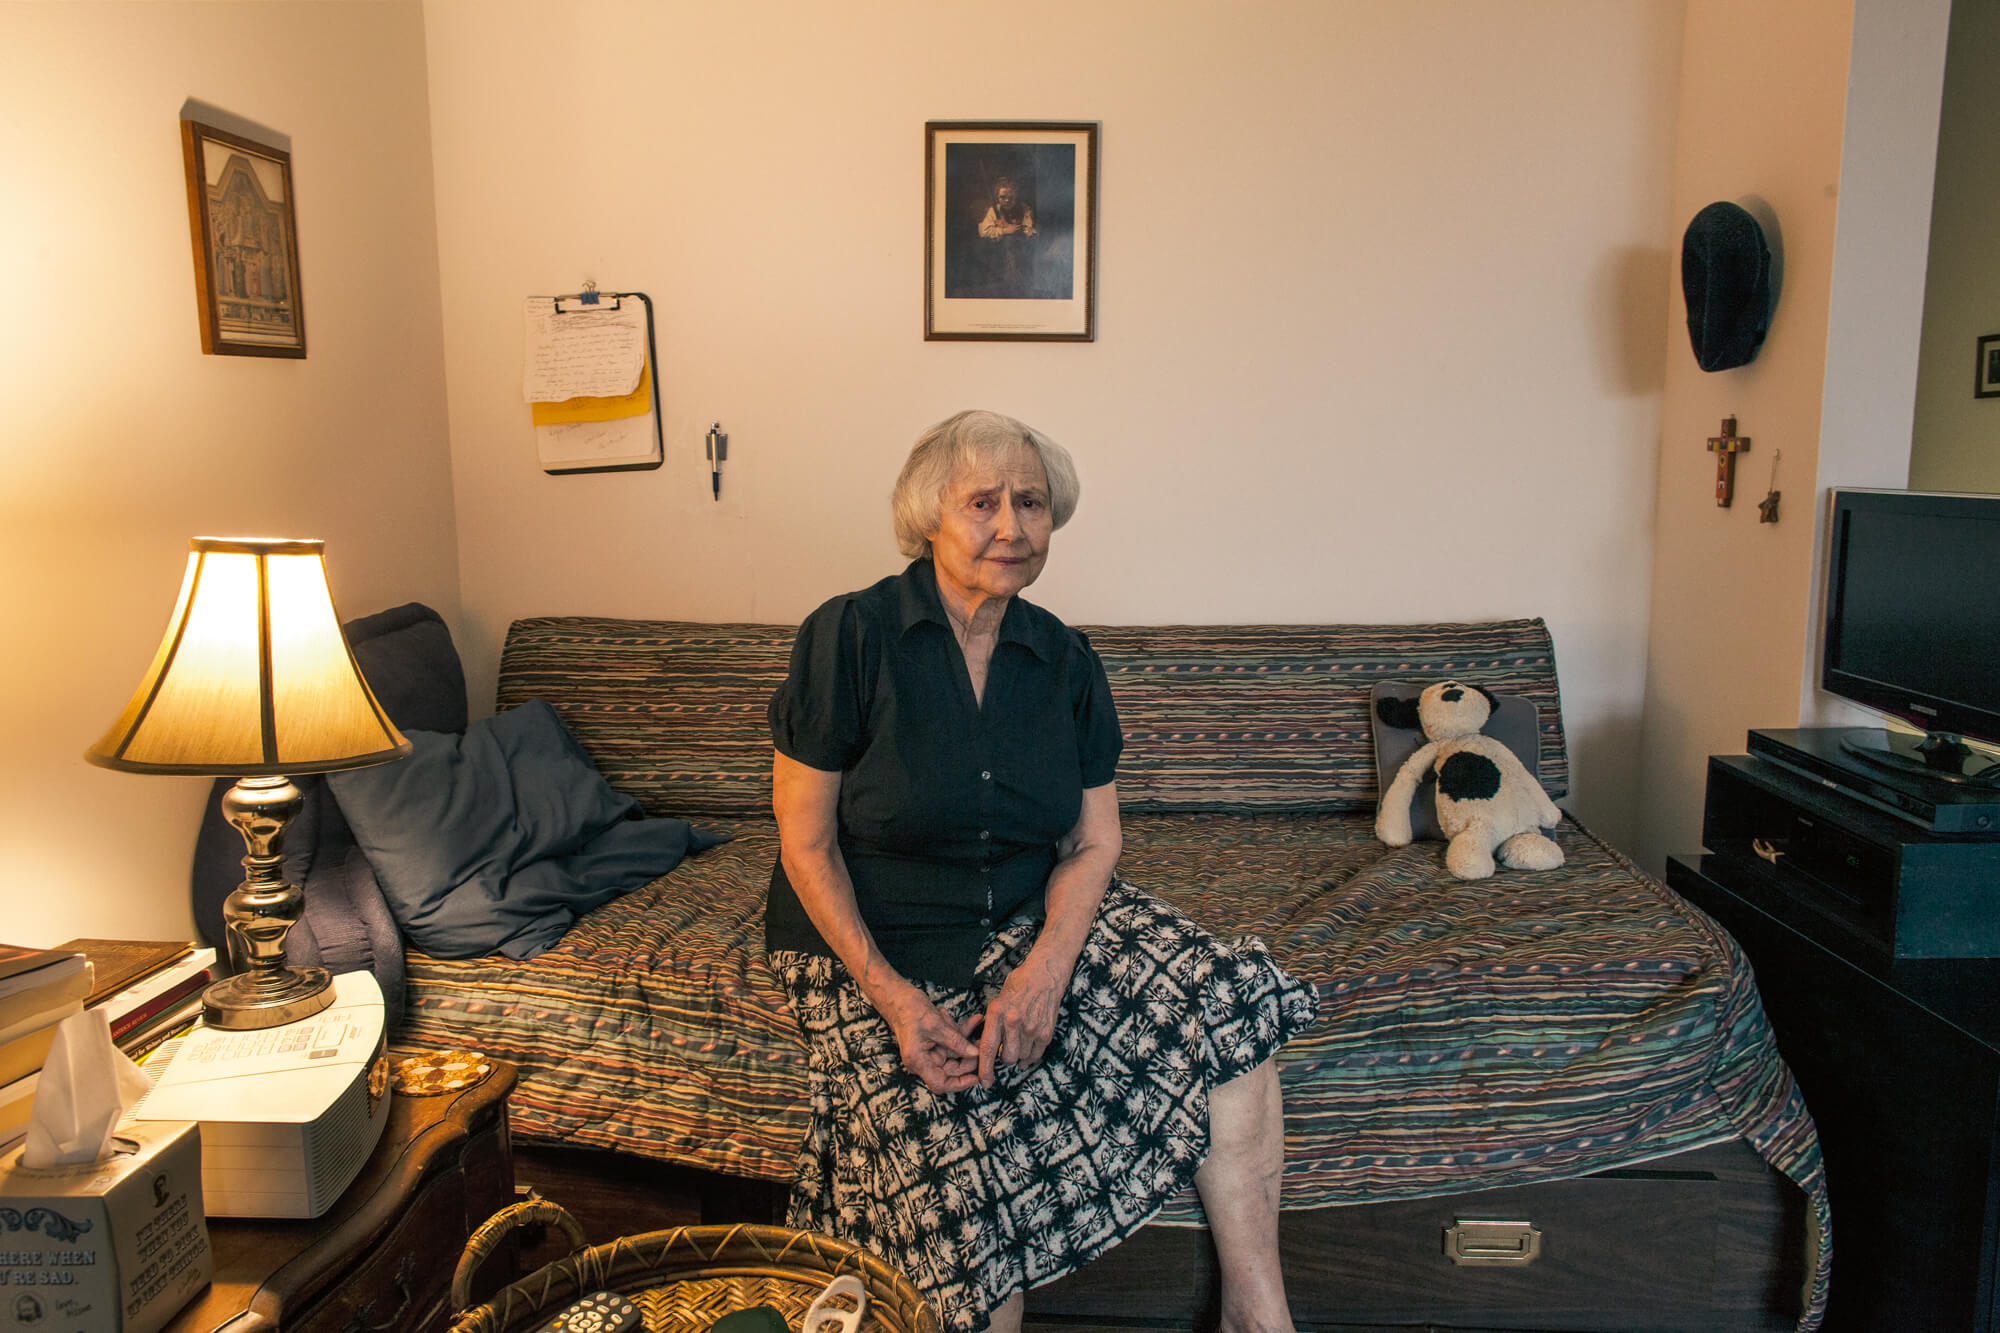 Frankie Alduino captures the longtime residents of Westbeth Artists' Housing